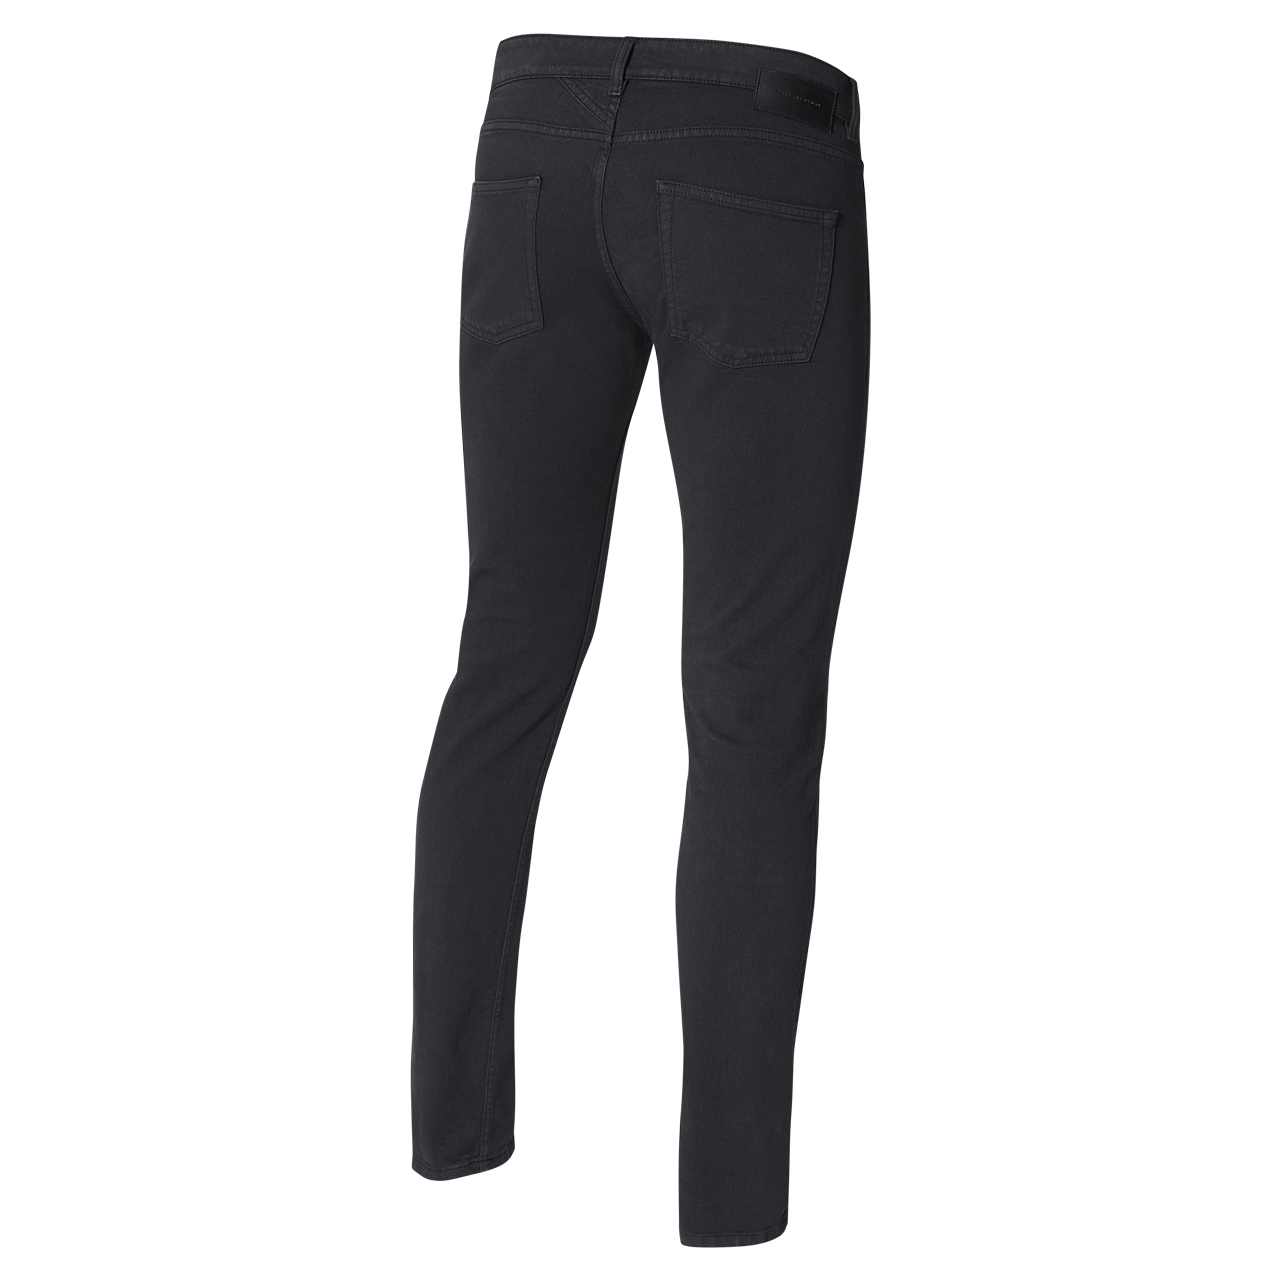 5-Pocket Slim Fit Pants